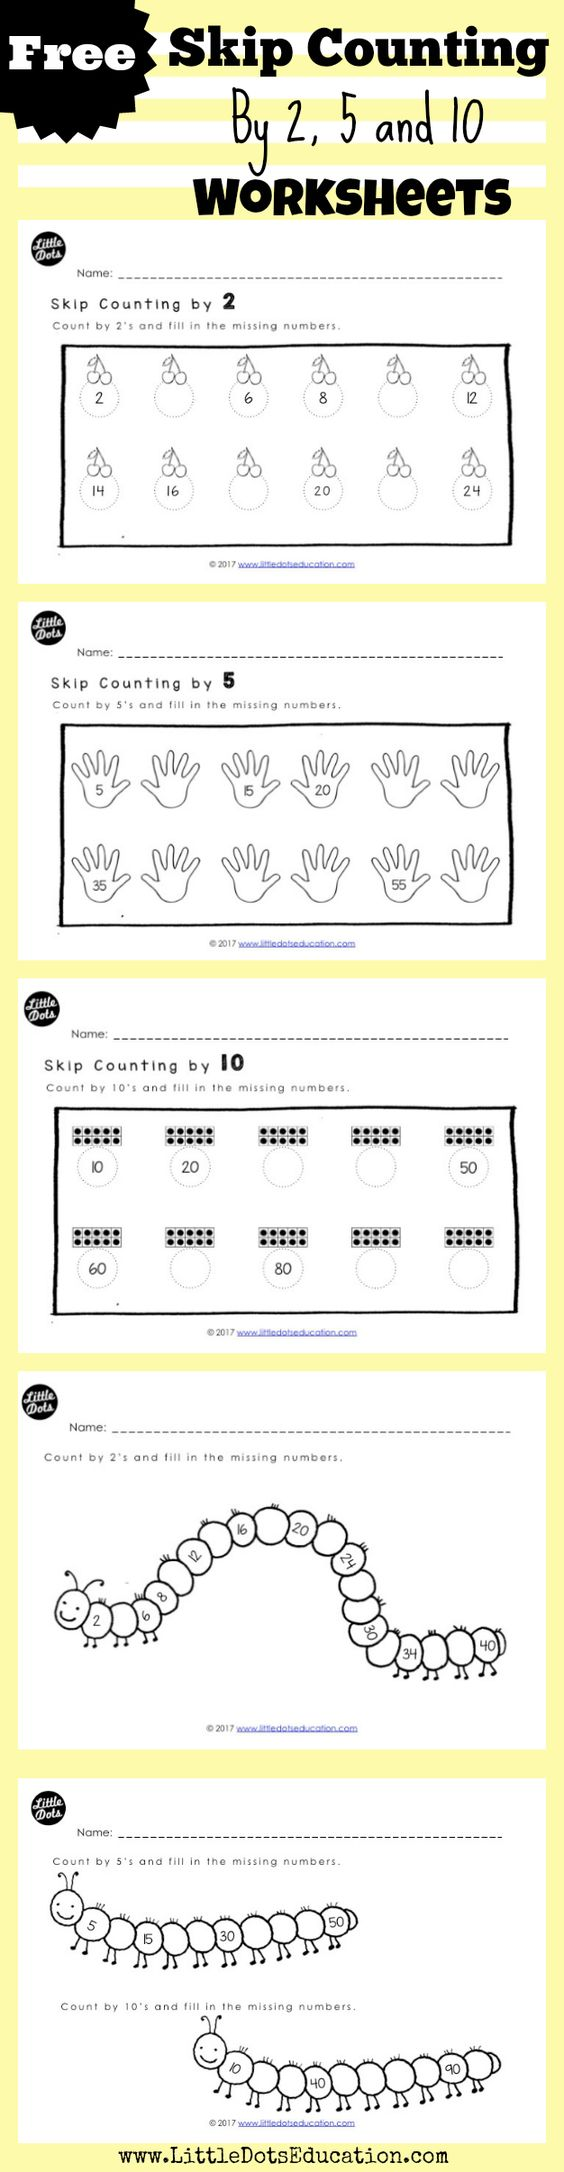 Skip Counting Patterns Worksheets addition flashcards vertical ...